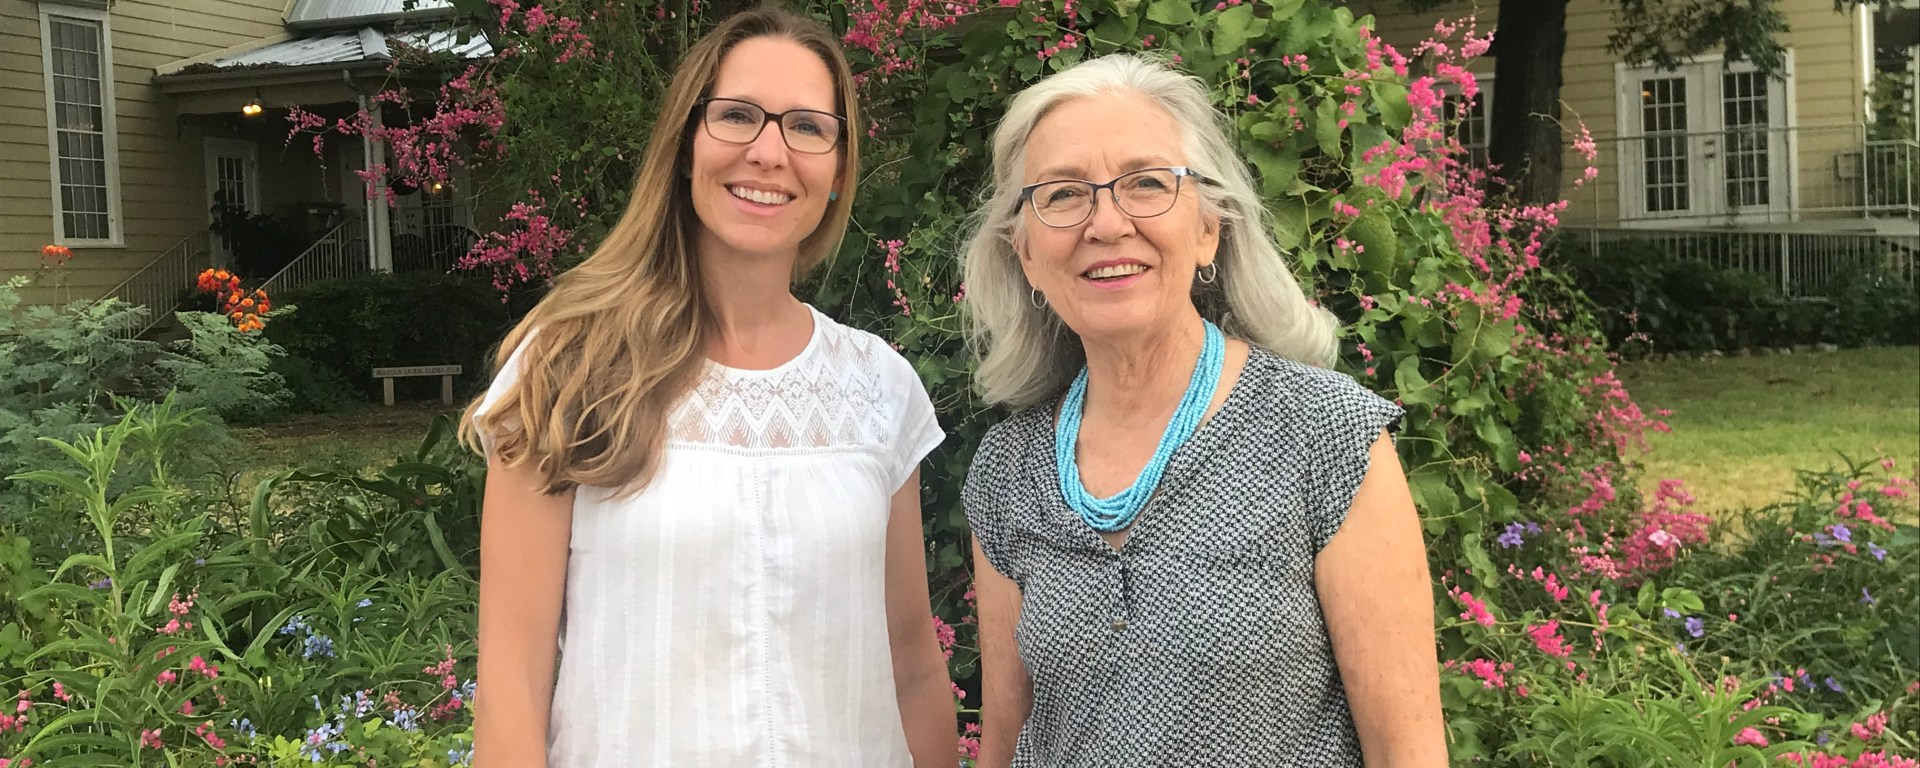 New Executive director Virginia Condie (left) and Former Executive Director Dianne Wassenich (right) stand in front of bush with ample pink flowers.